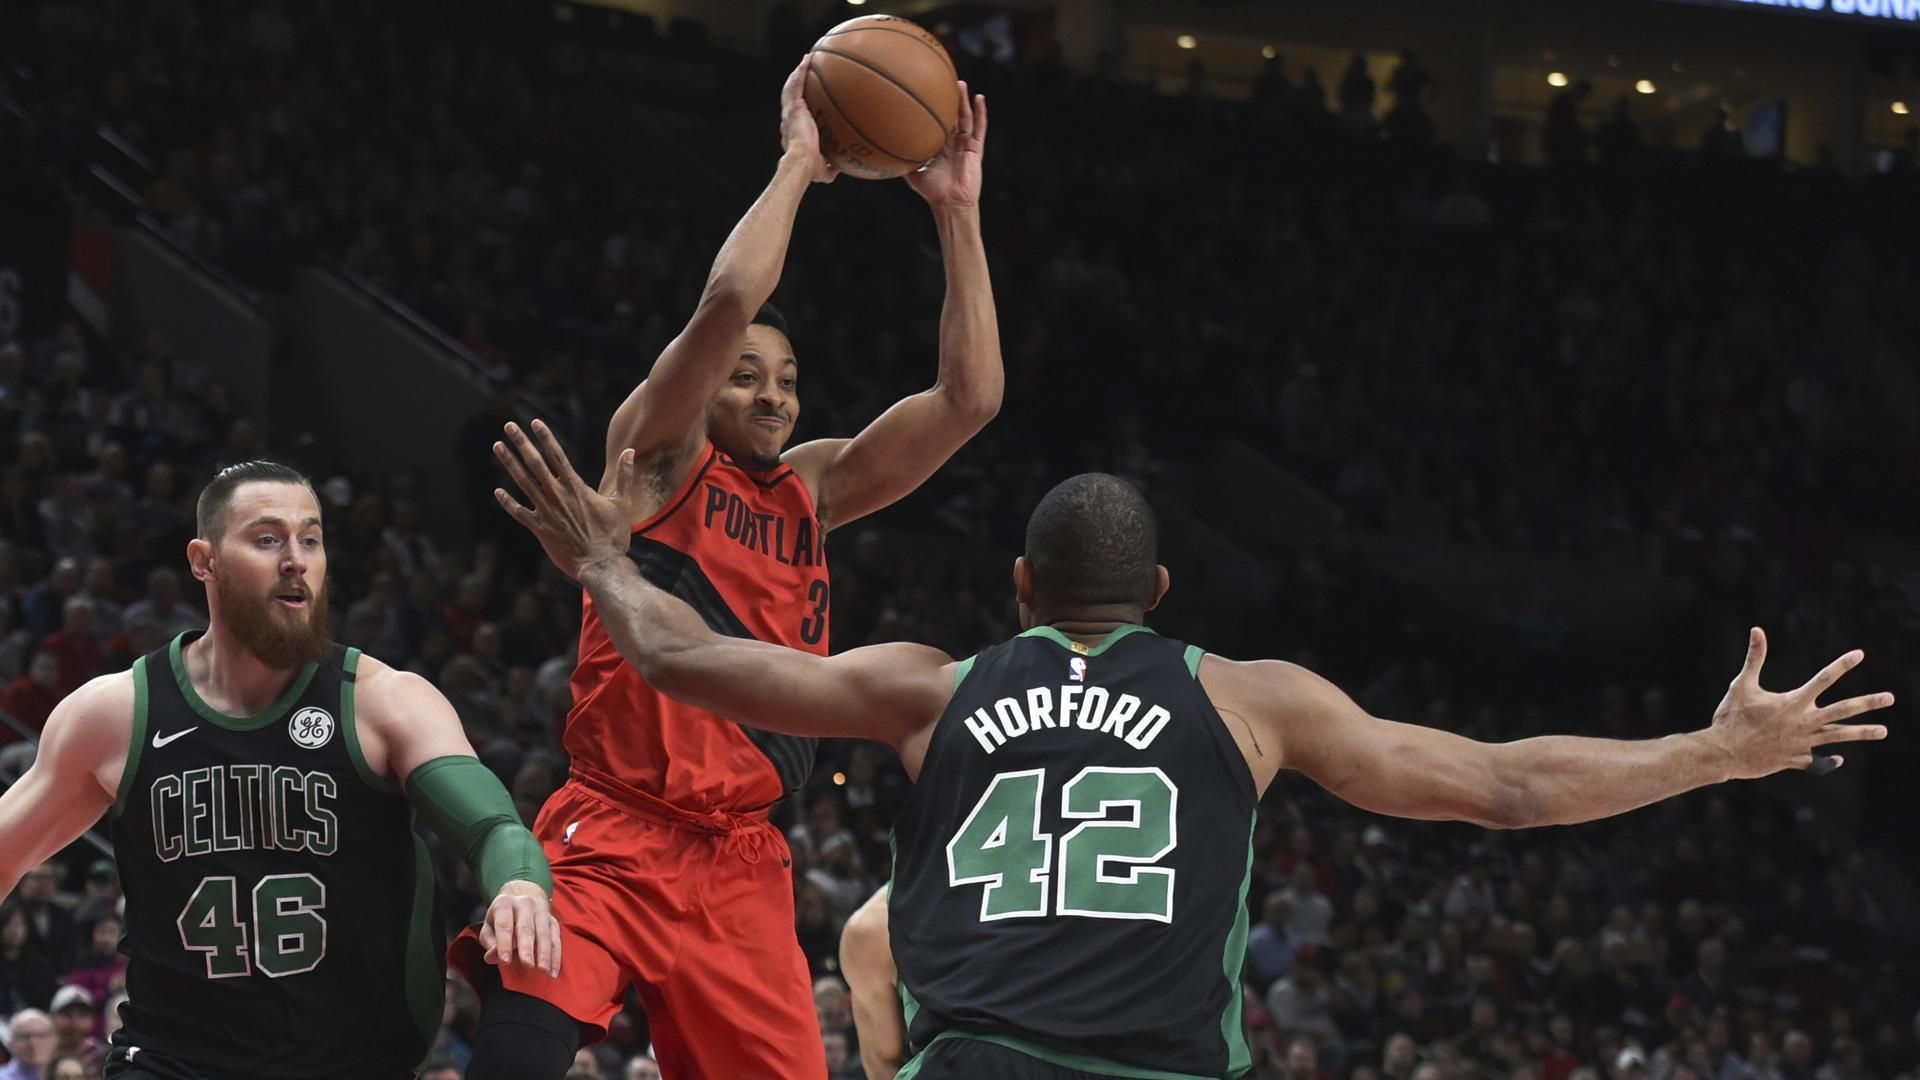 Just Like That Another Rally And Another Unlikely Win For The Celtics The Boston Globe Celtic Boston Celtics Nba Basketball Game